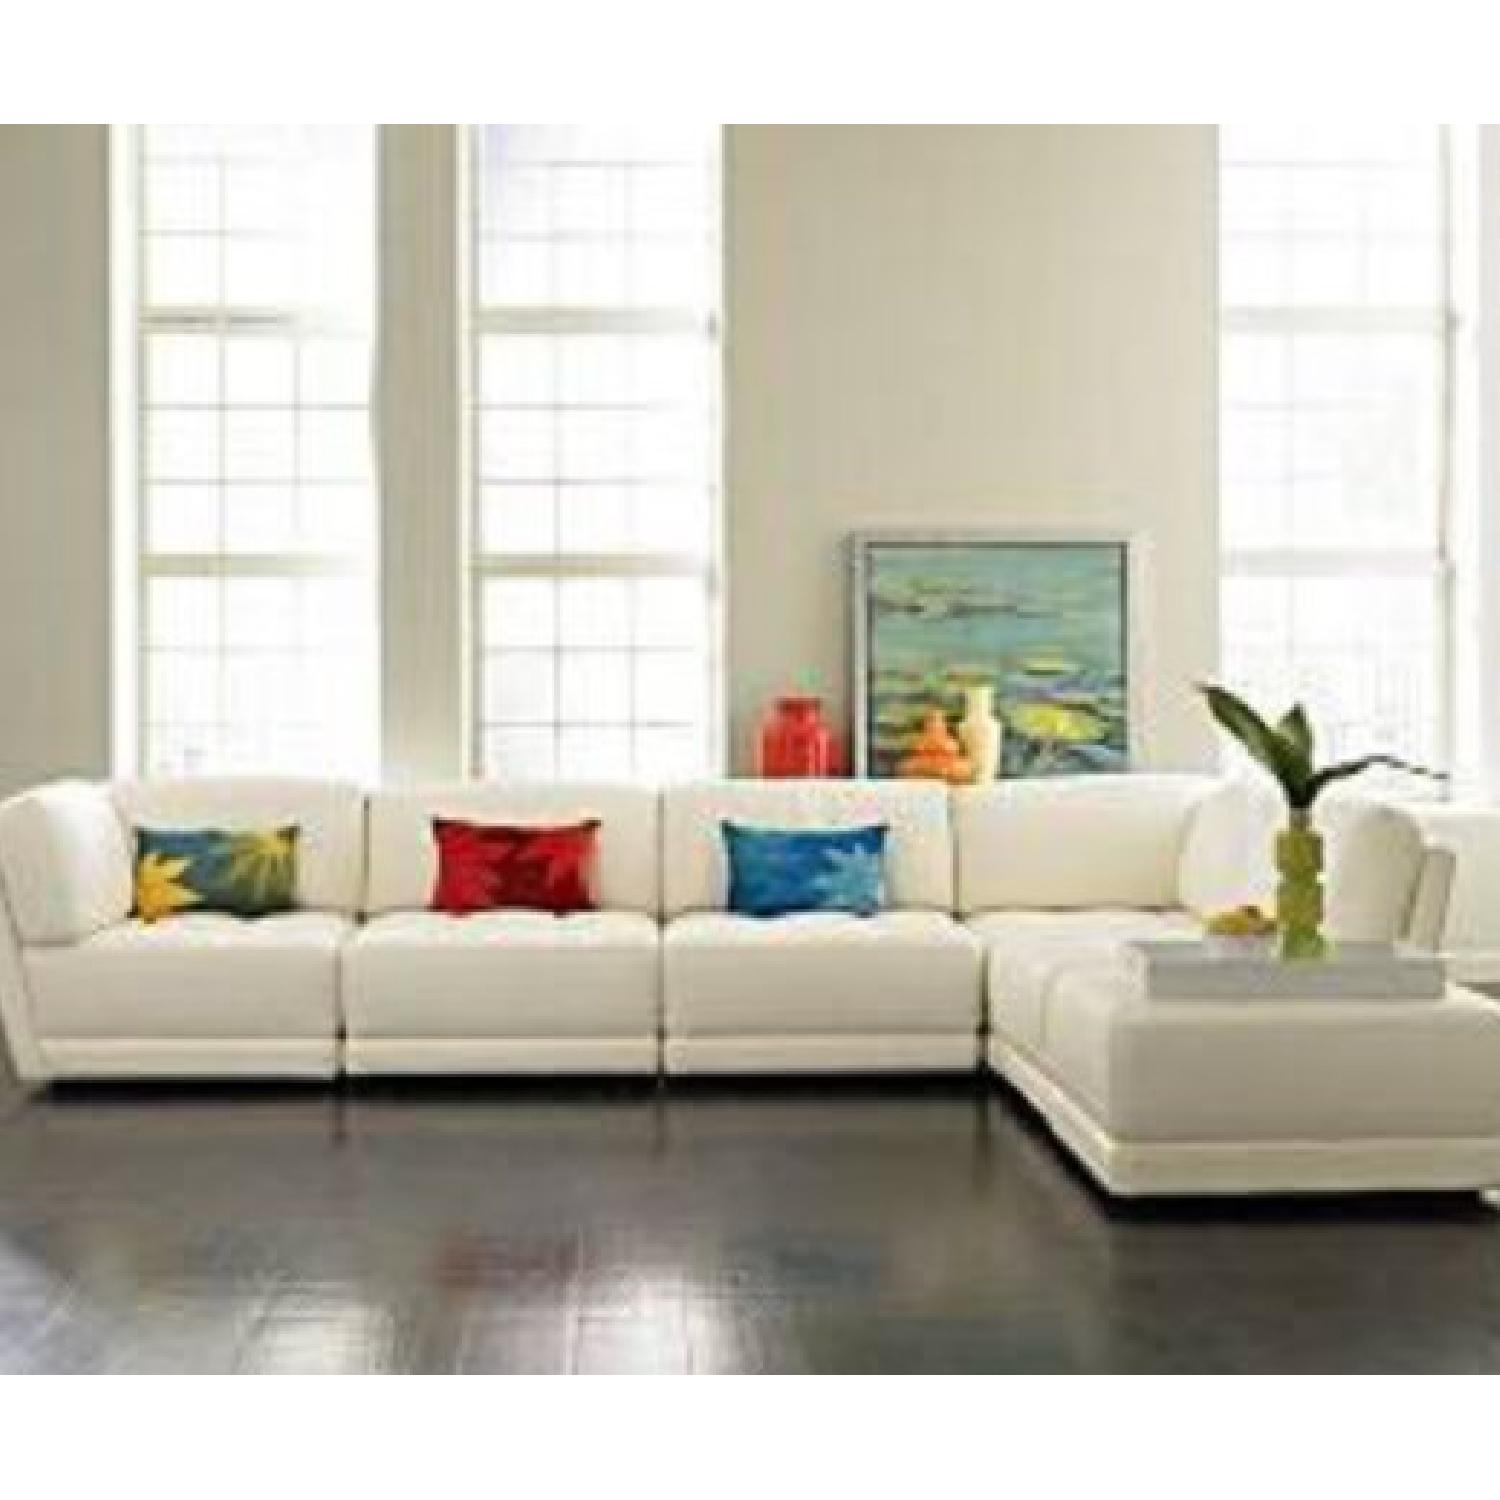 Vice Versa White Leather Modular Couch - image-3